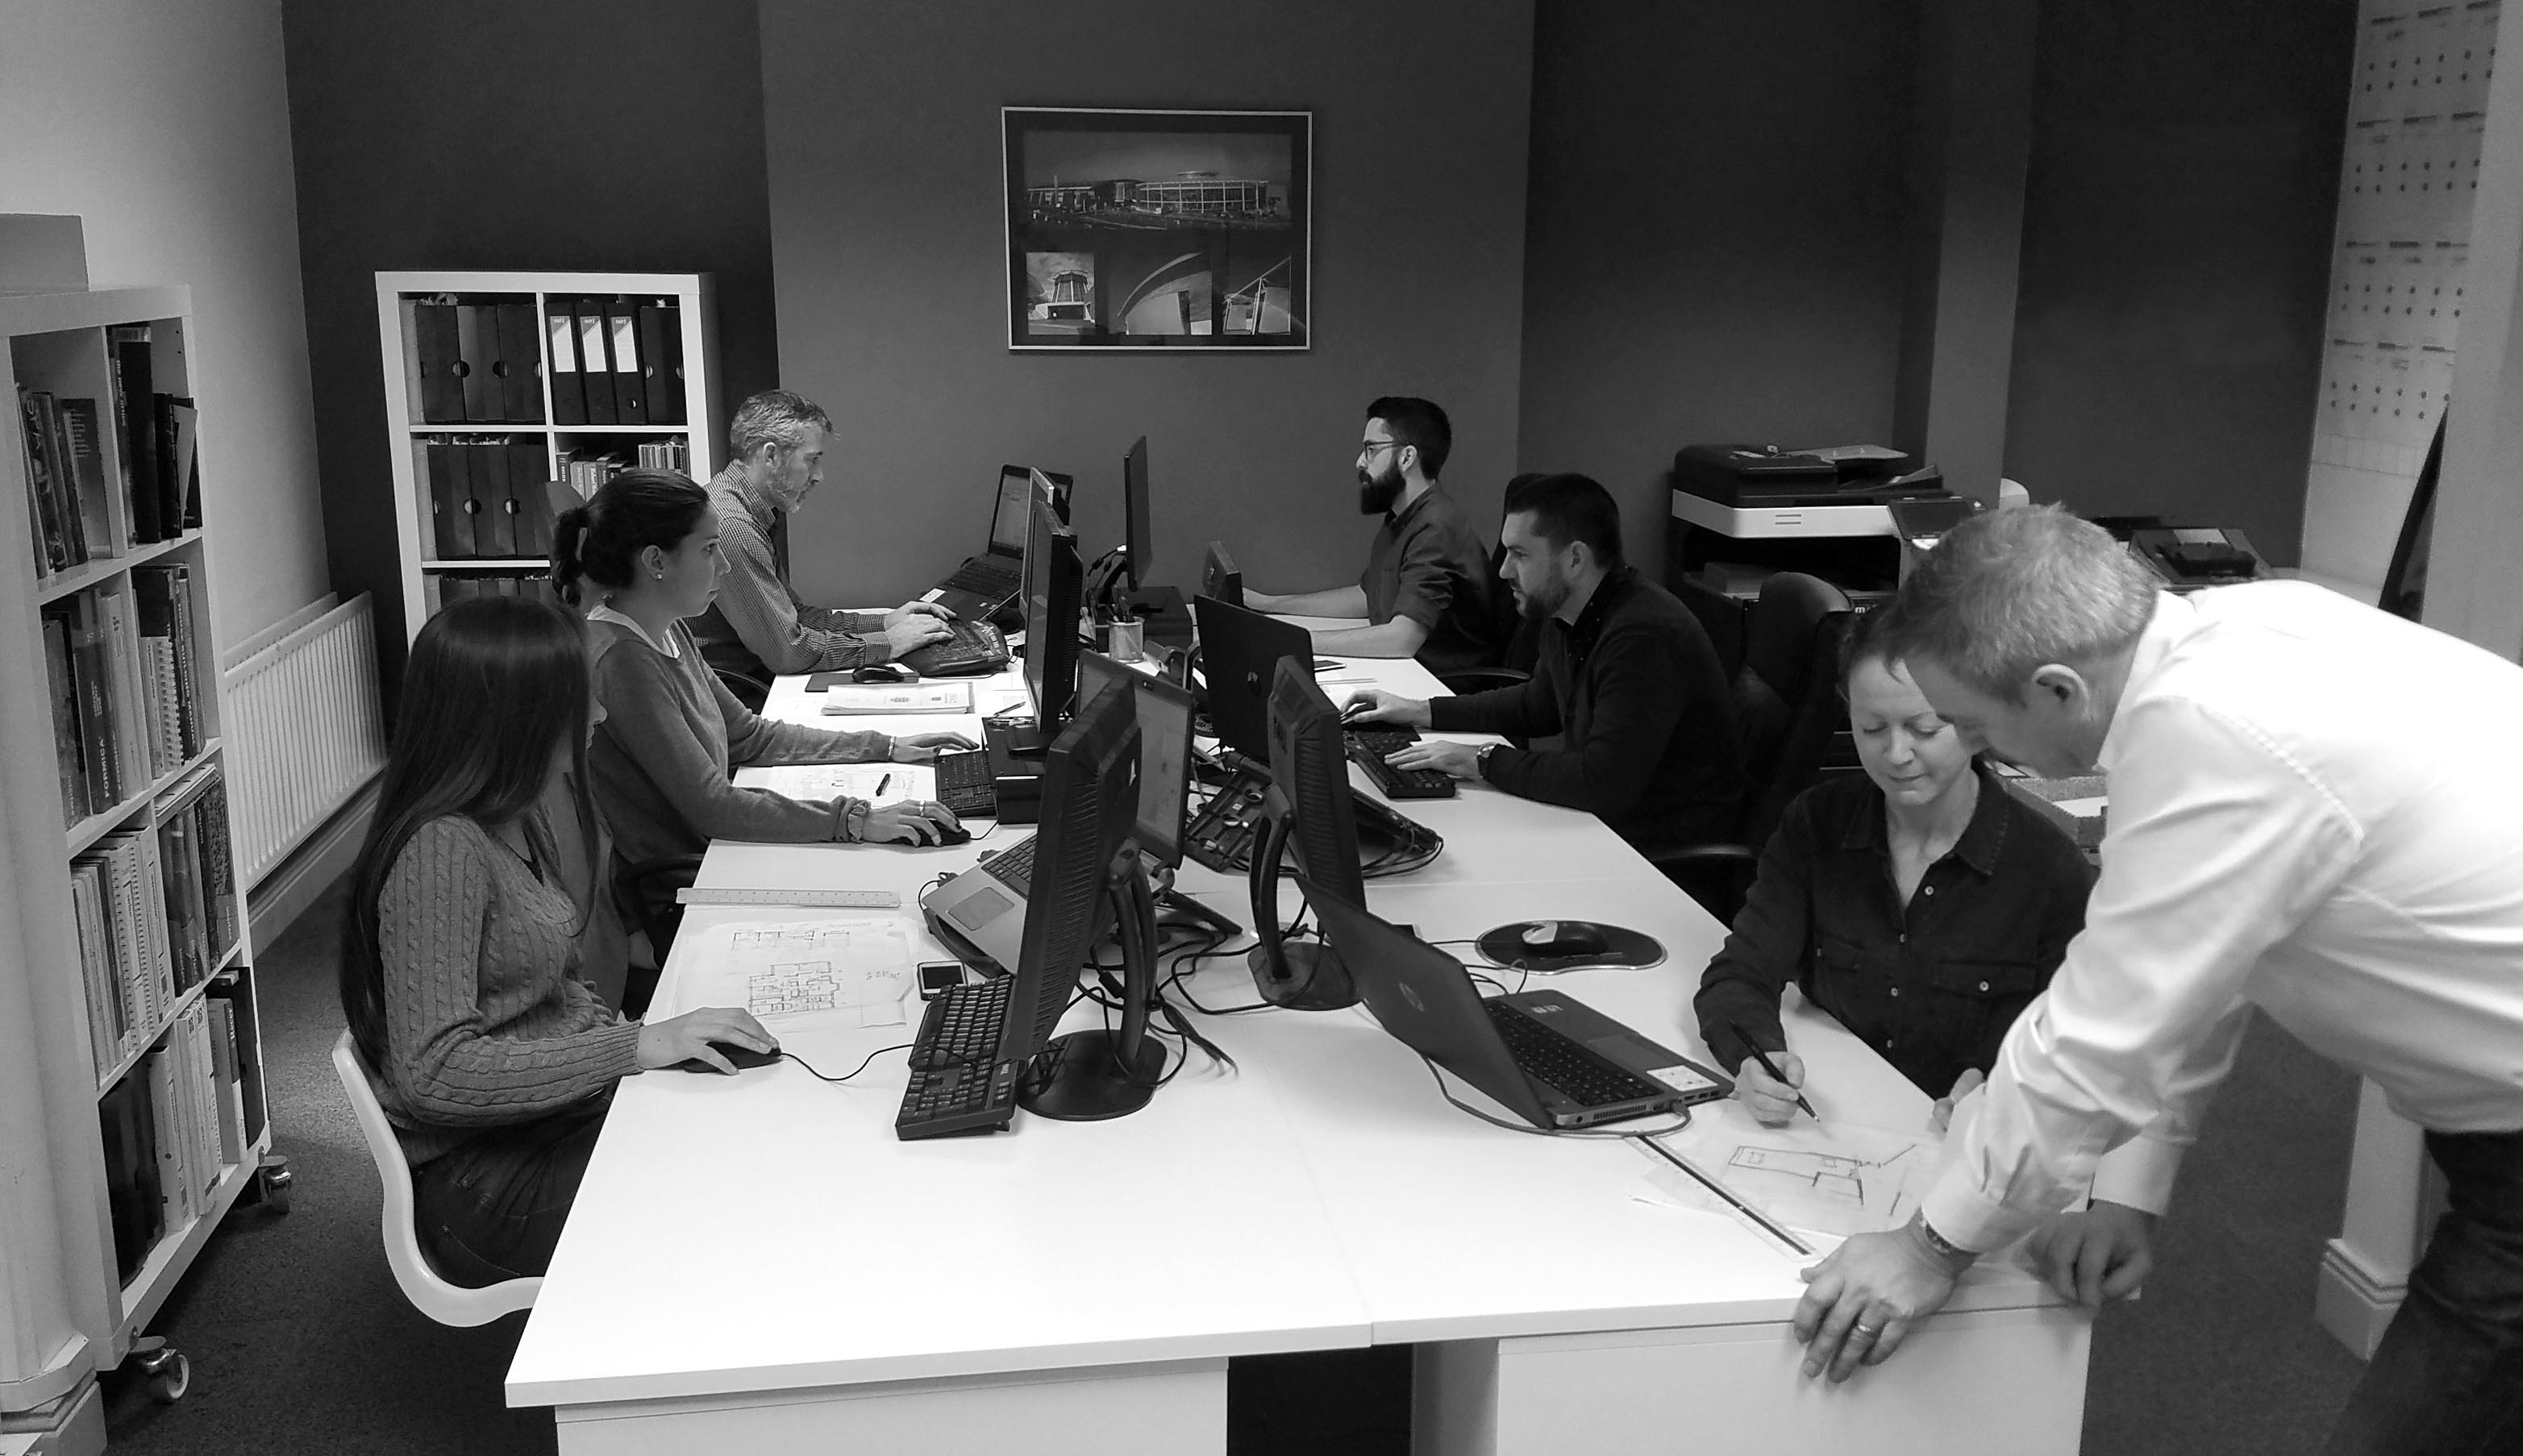 Black and white photo of staff working in office